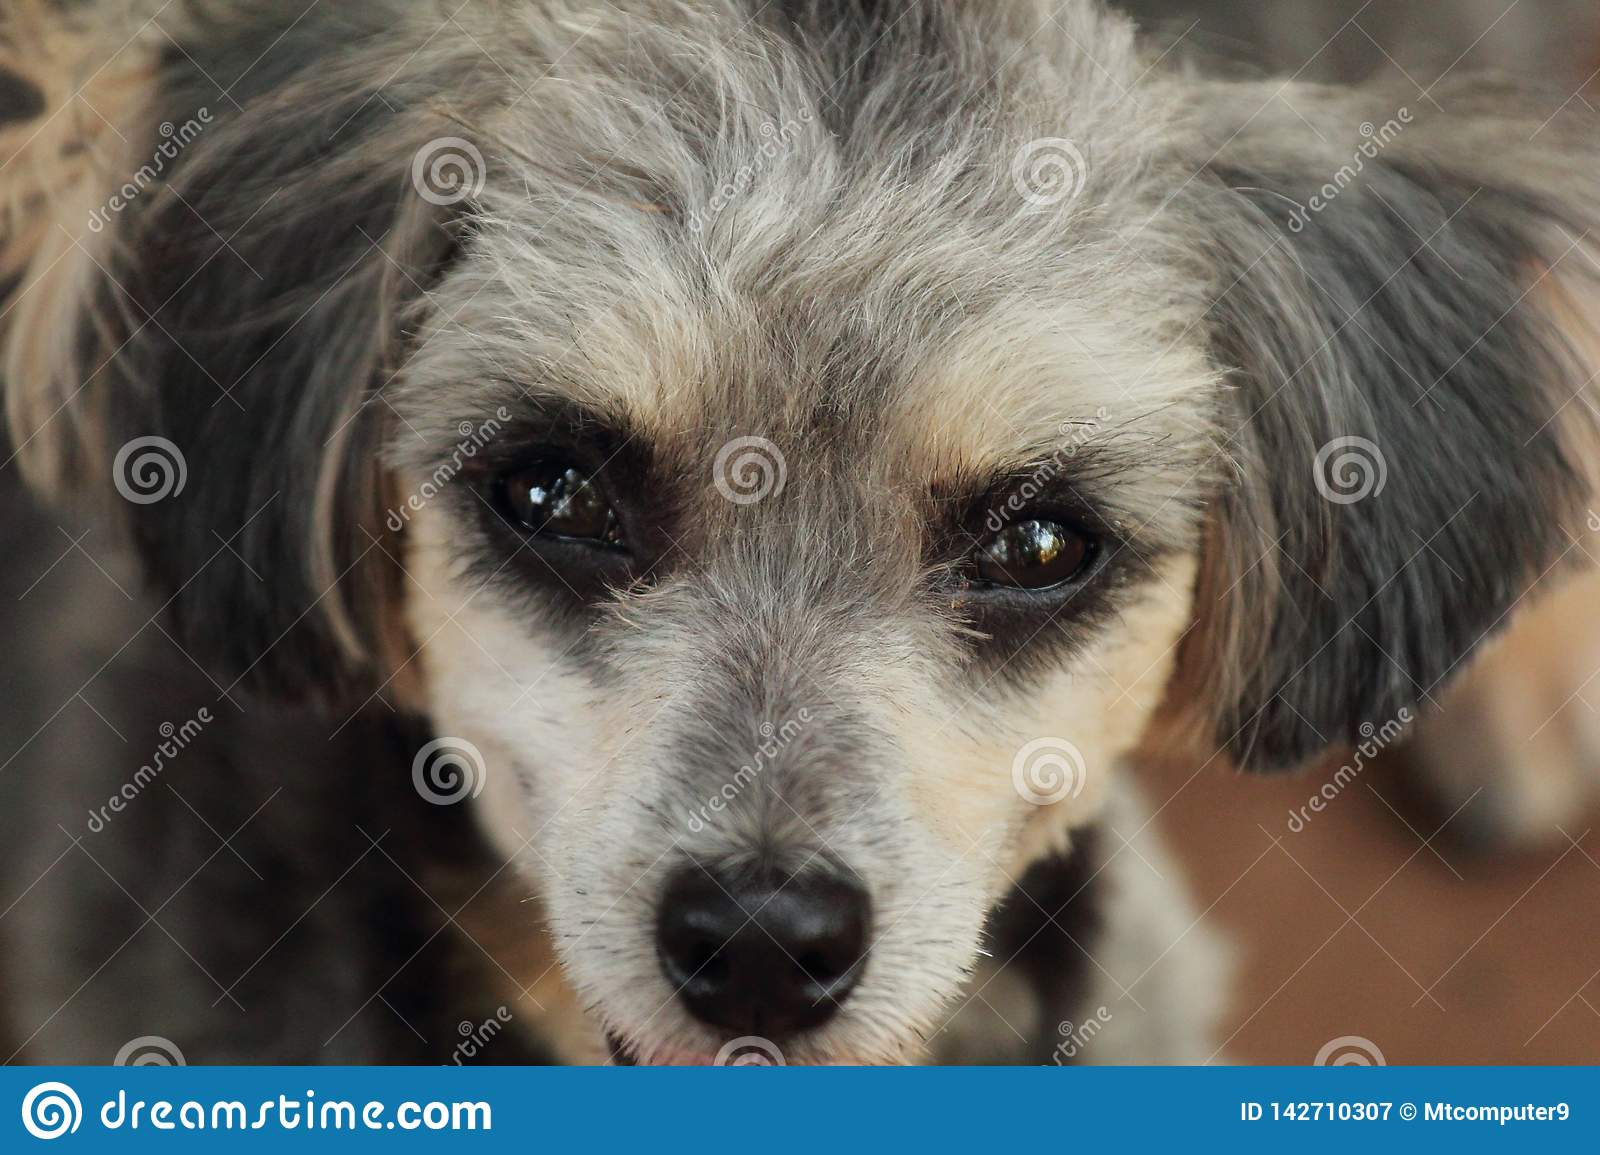 Shih Tzu Poodle Stock Image Image Of White Dogs Cute 142710307